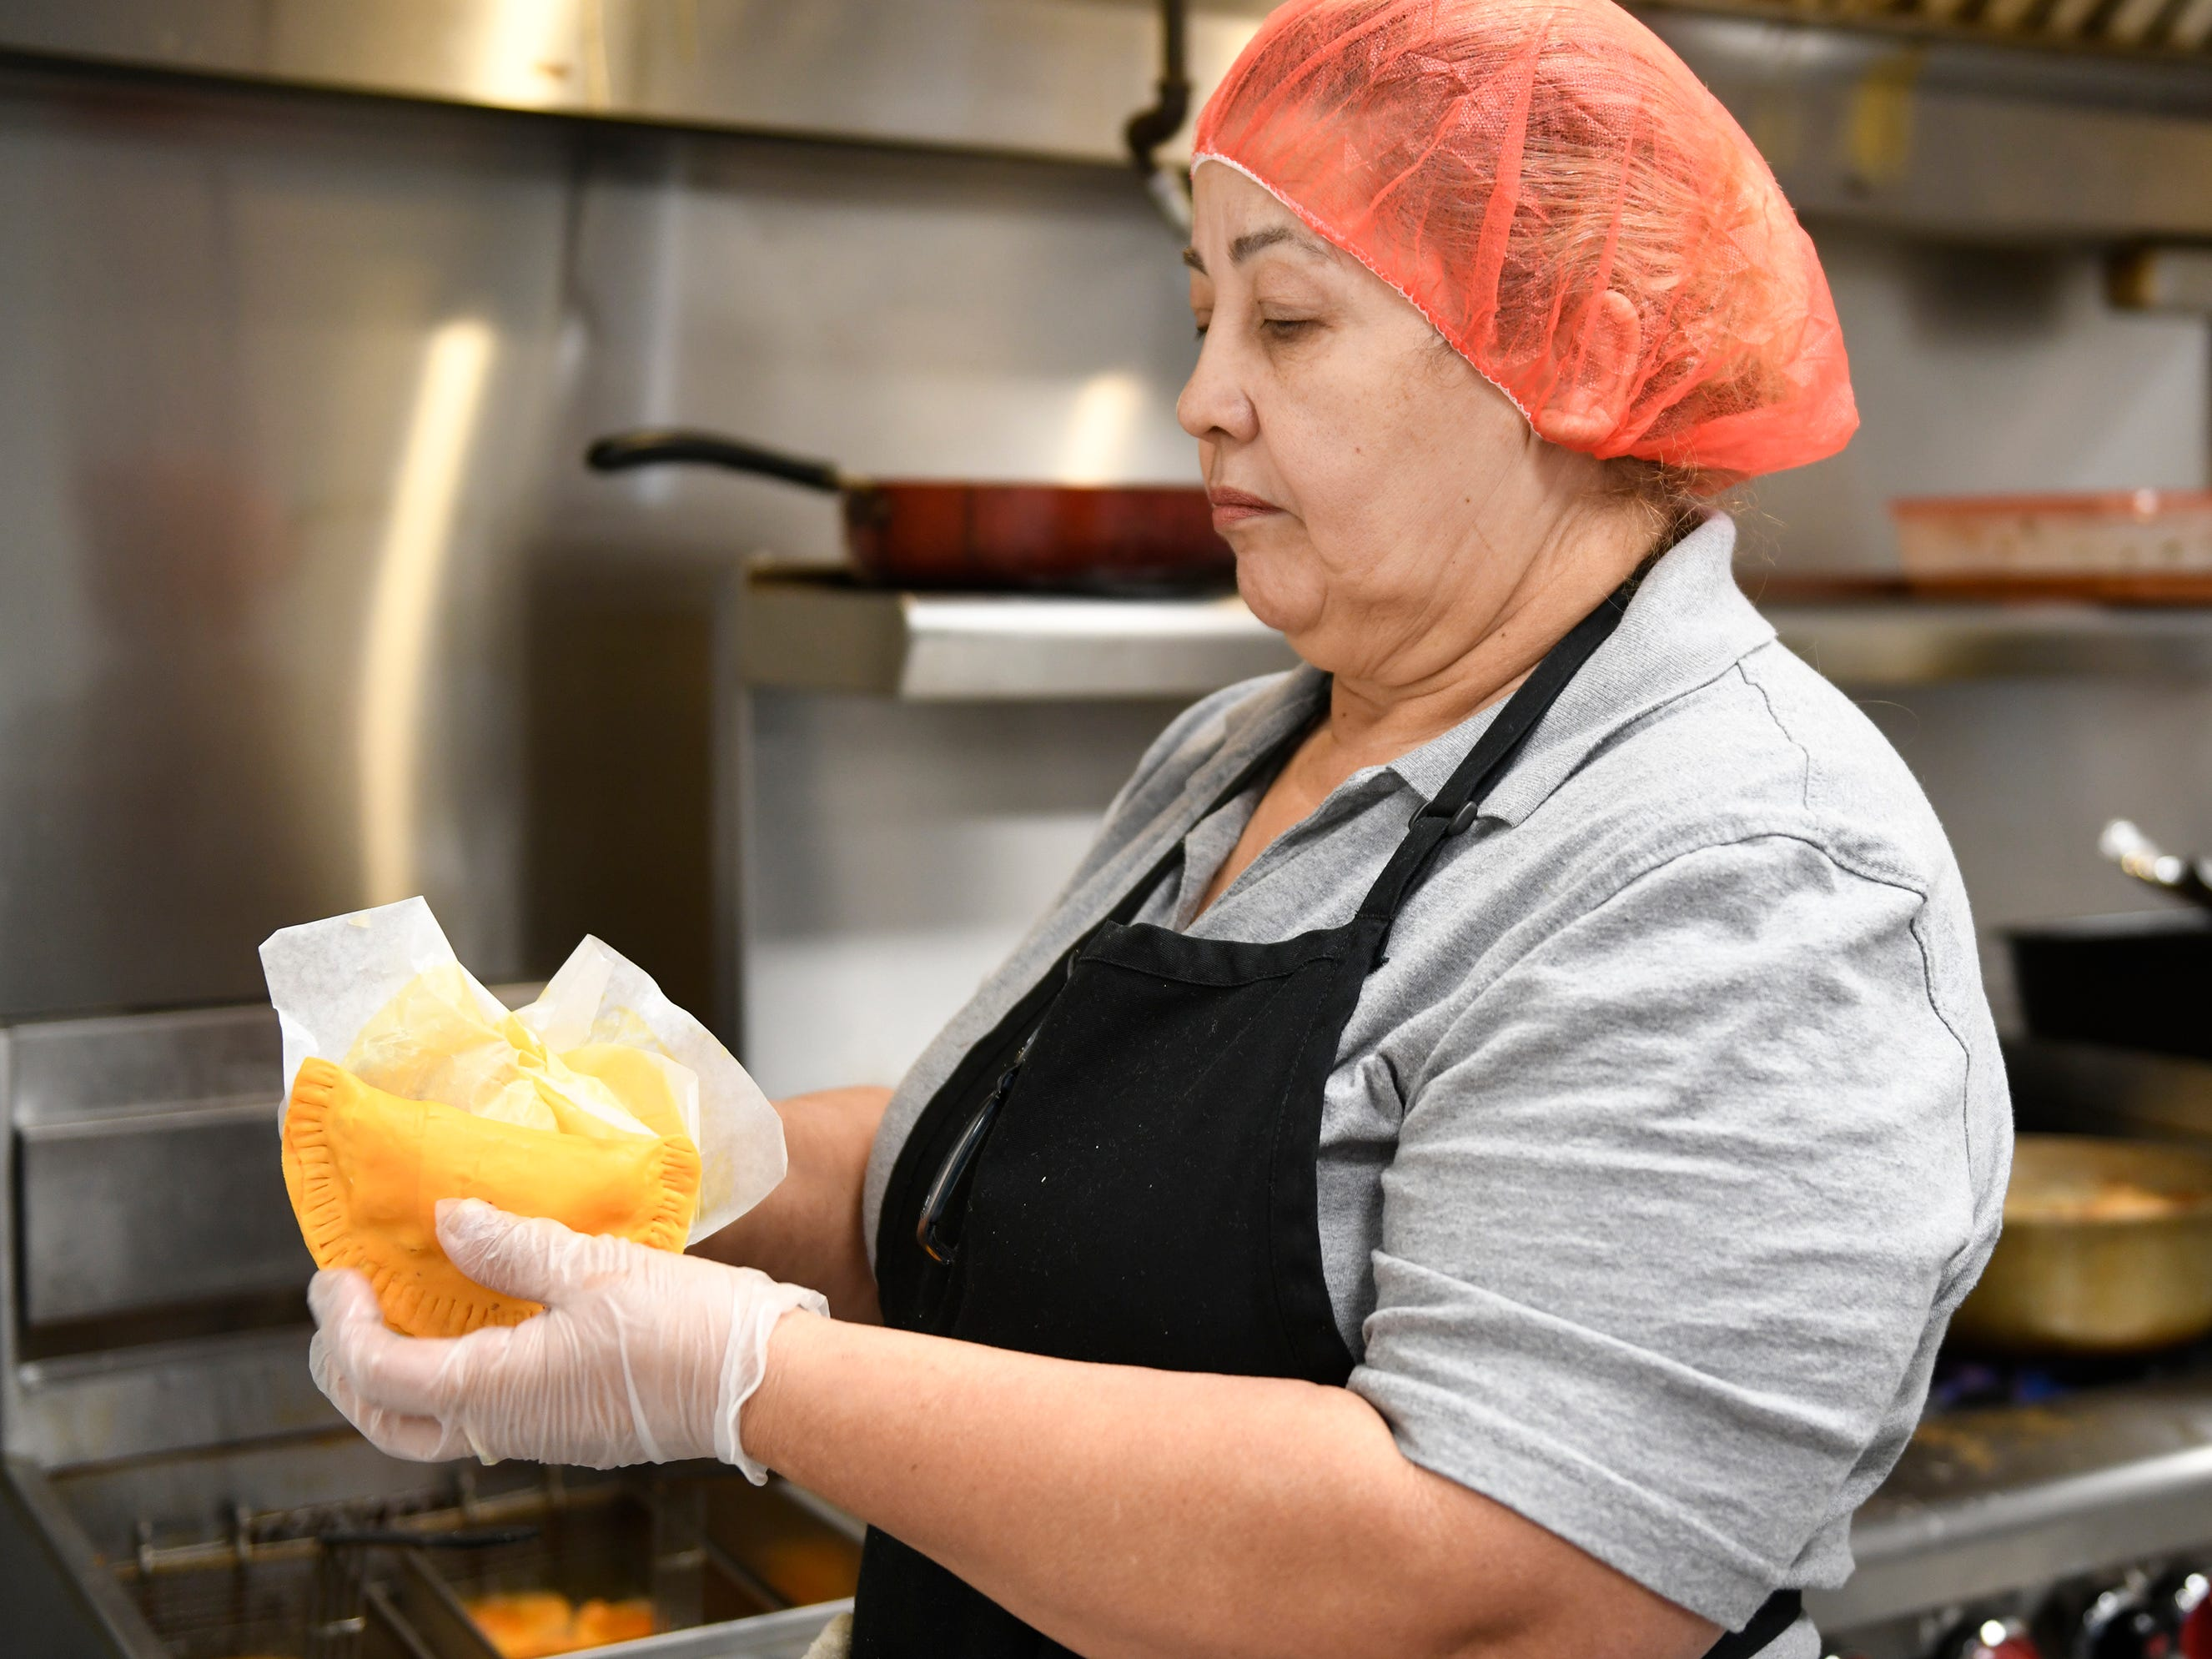 Kathy Flores holds a pastelillo that she prepared at Criollo's Latin Cuisine. The Millville restaurant specializes in Spanish, Puerto Rican and Dominican food.